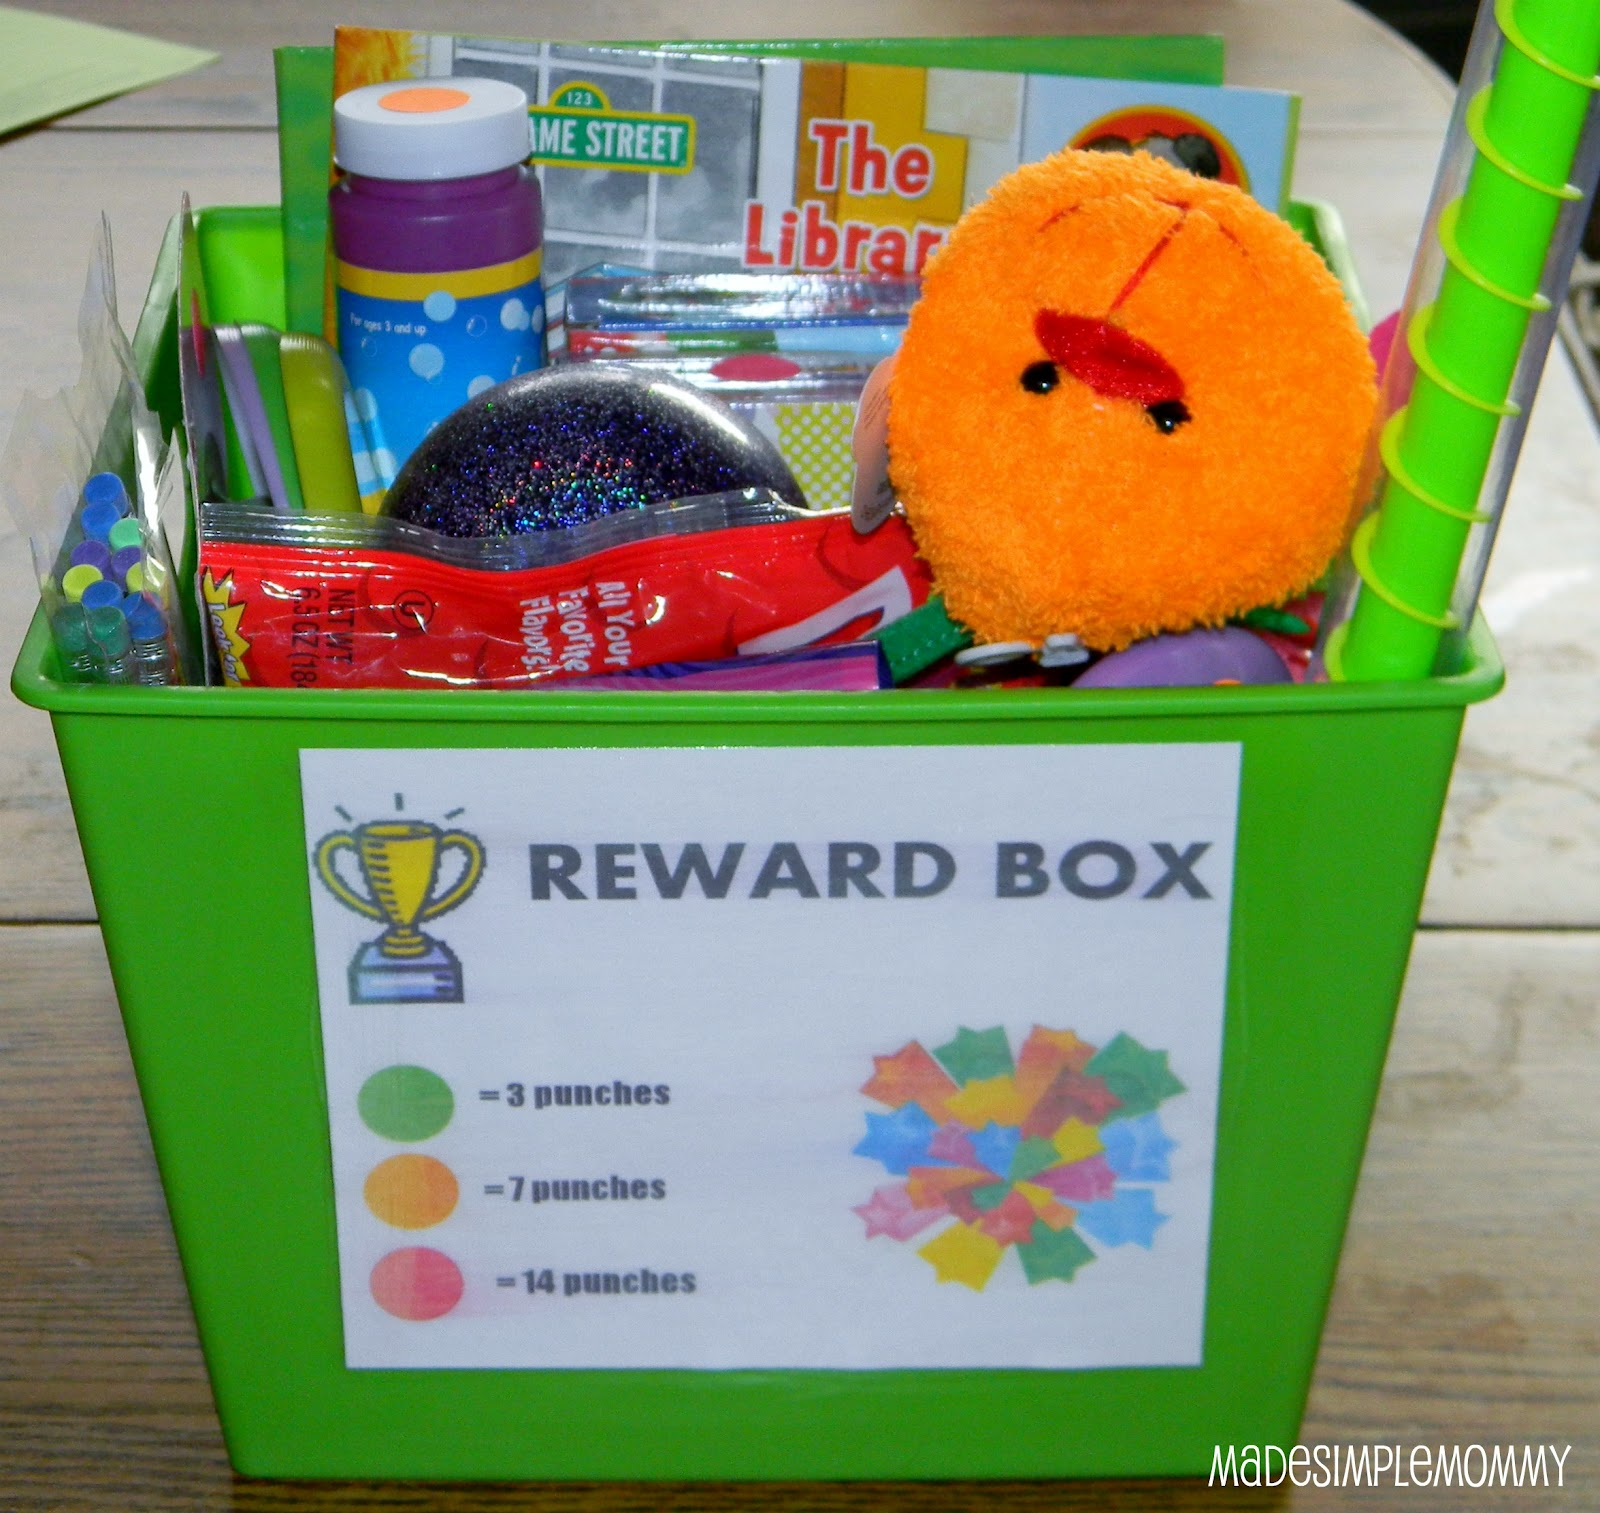 The box is full of simple candy toys and trinkets that kids think are amazing  shopped at dollar tree to get it started  ll list contents also children  reward charts potty behavior sugar for breakfast rh sugarforbreakfast